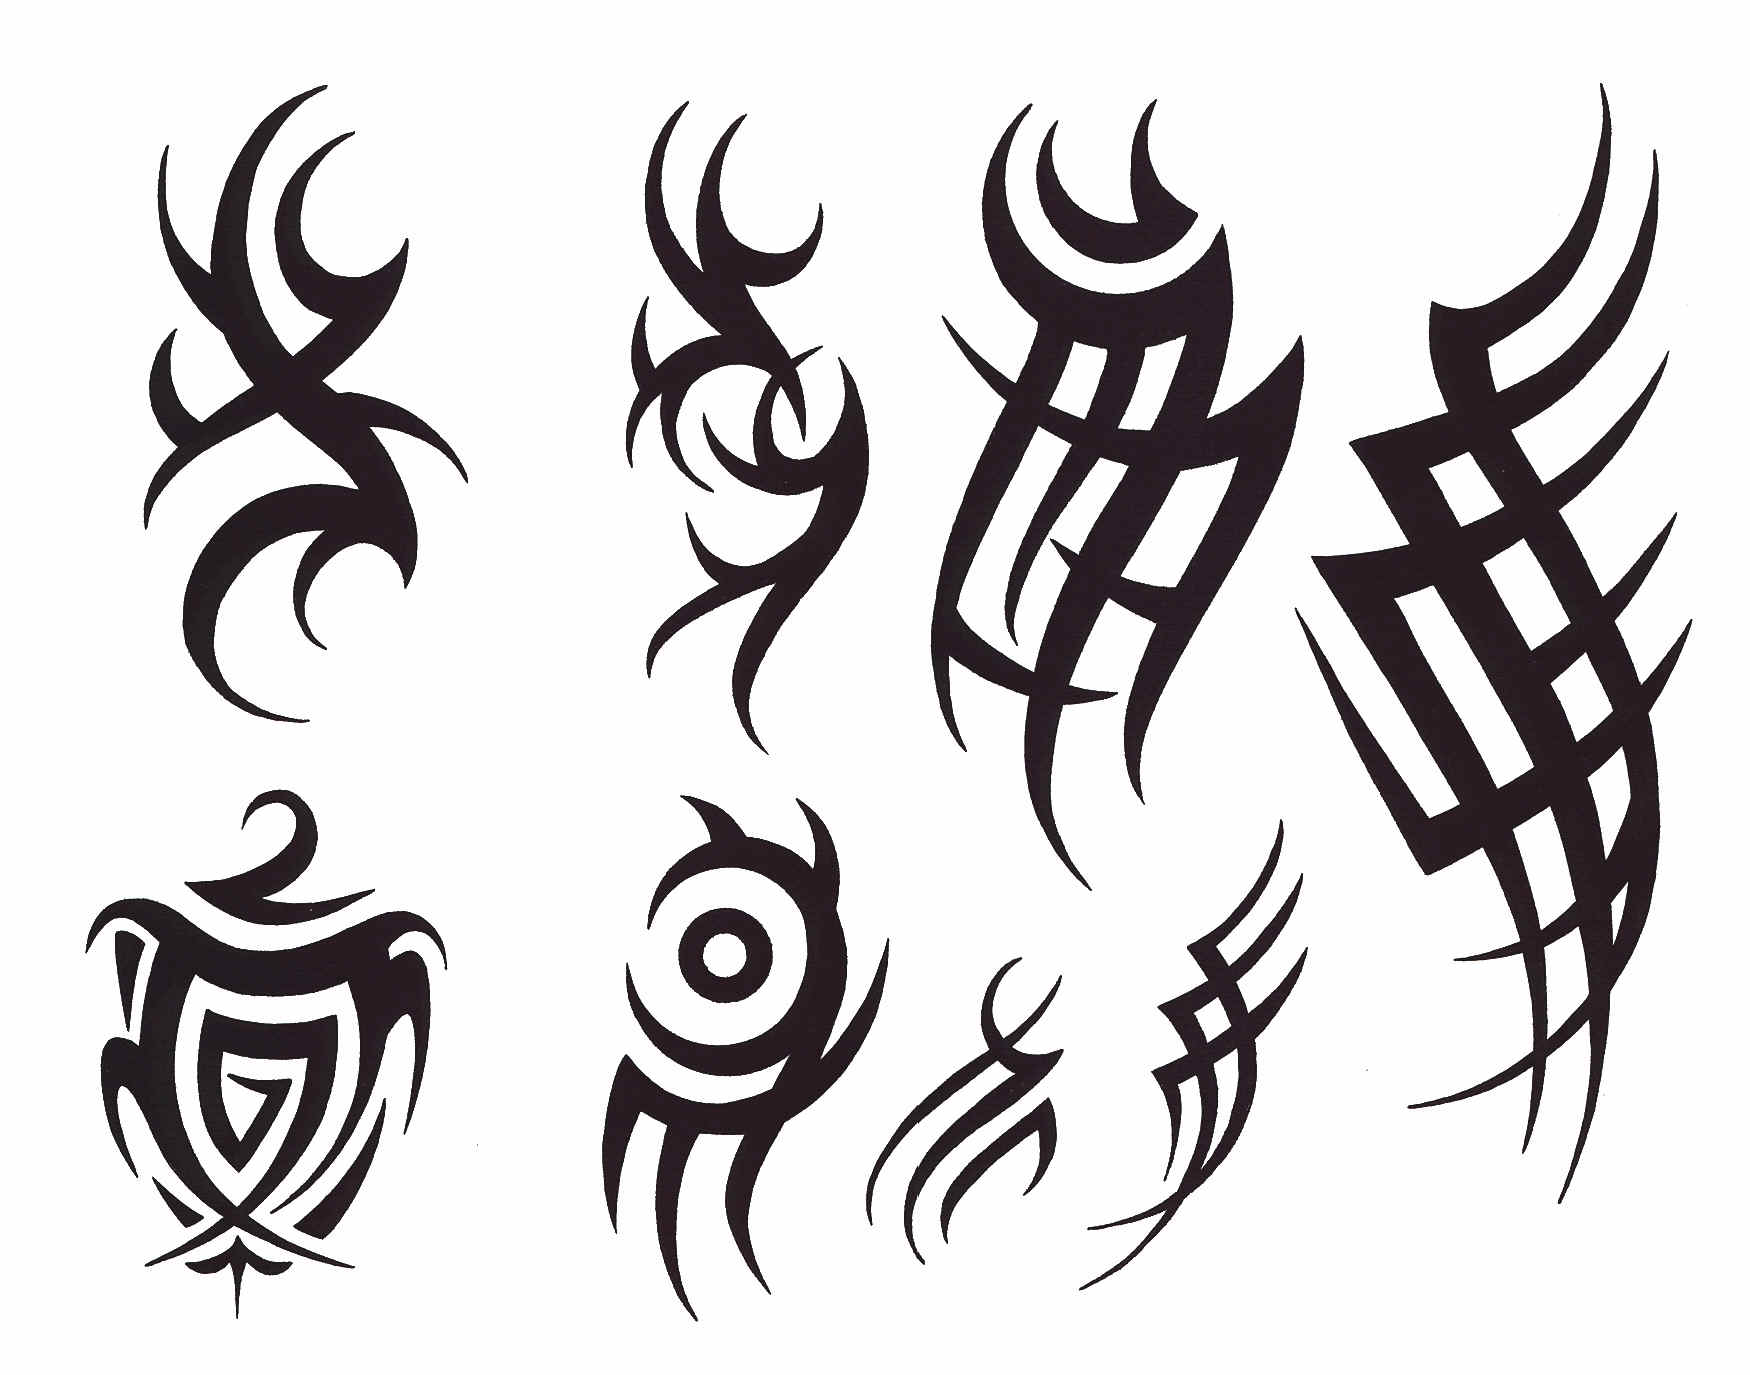 tribal tattoo templates free Tribal Design Free Tribal Free Tattoo Tattoo Designs Tattoos